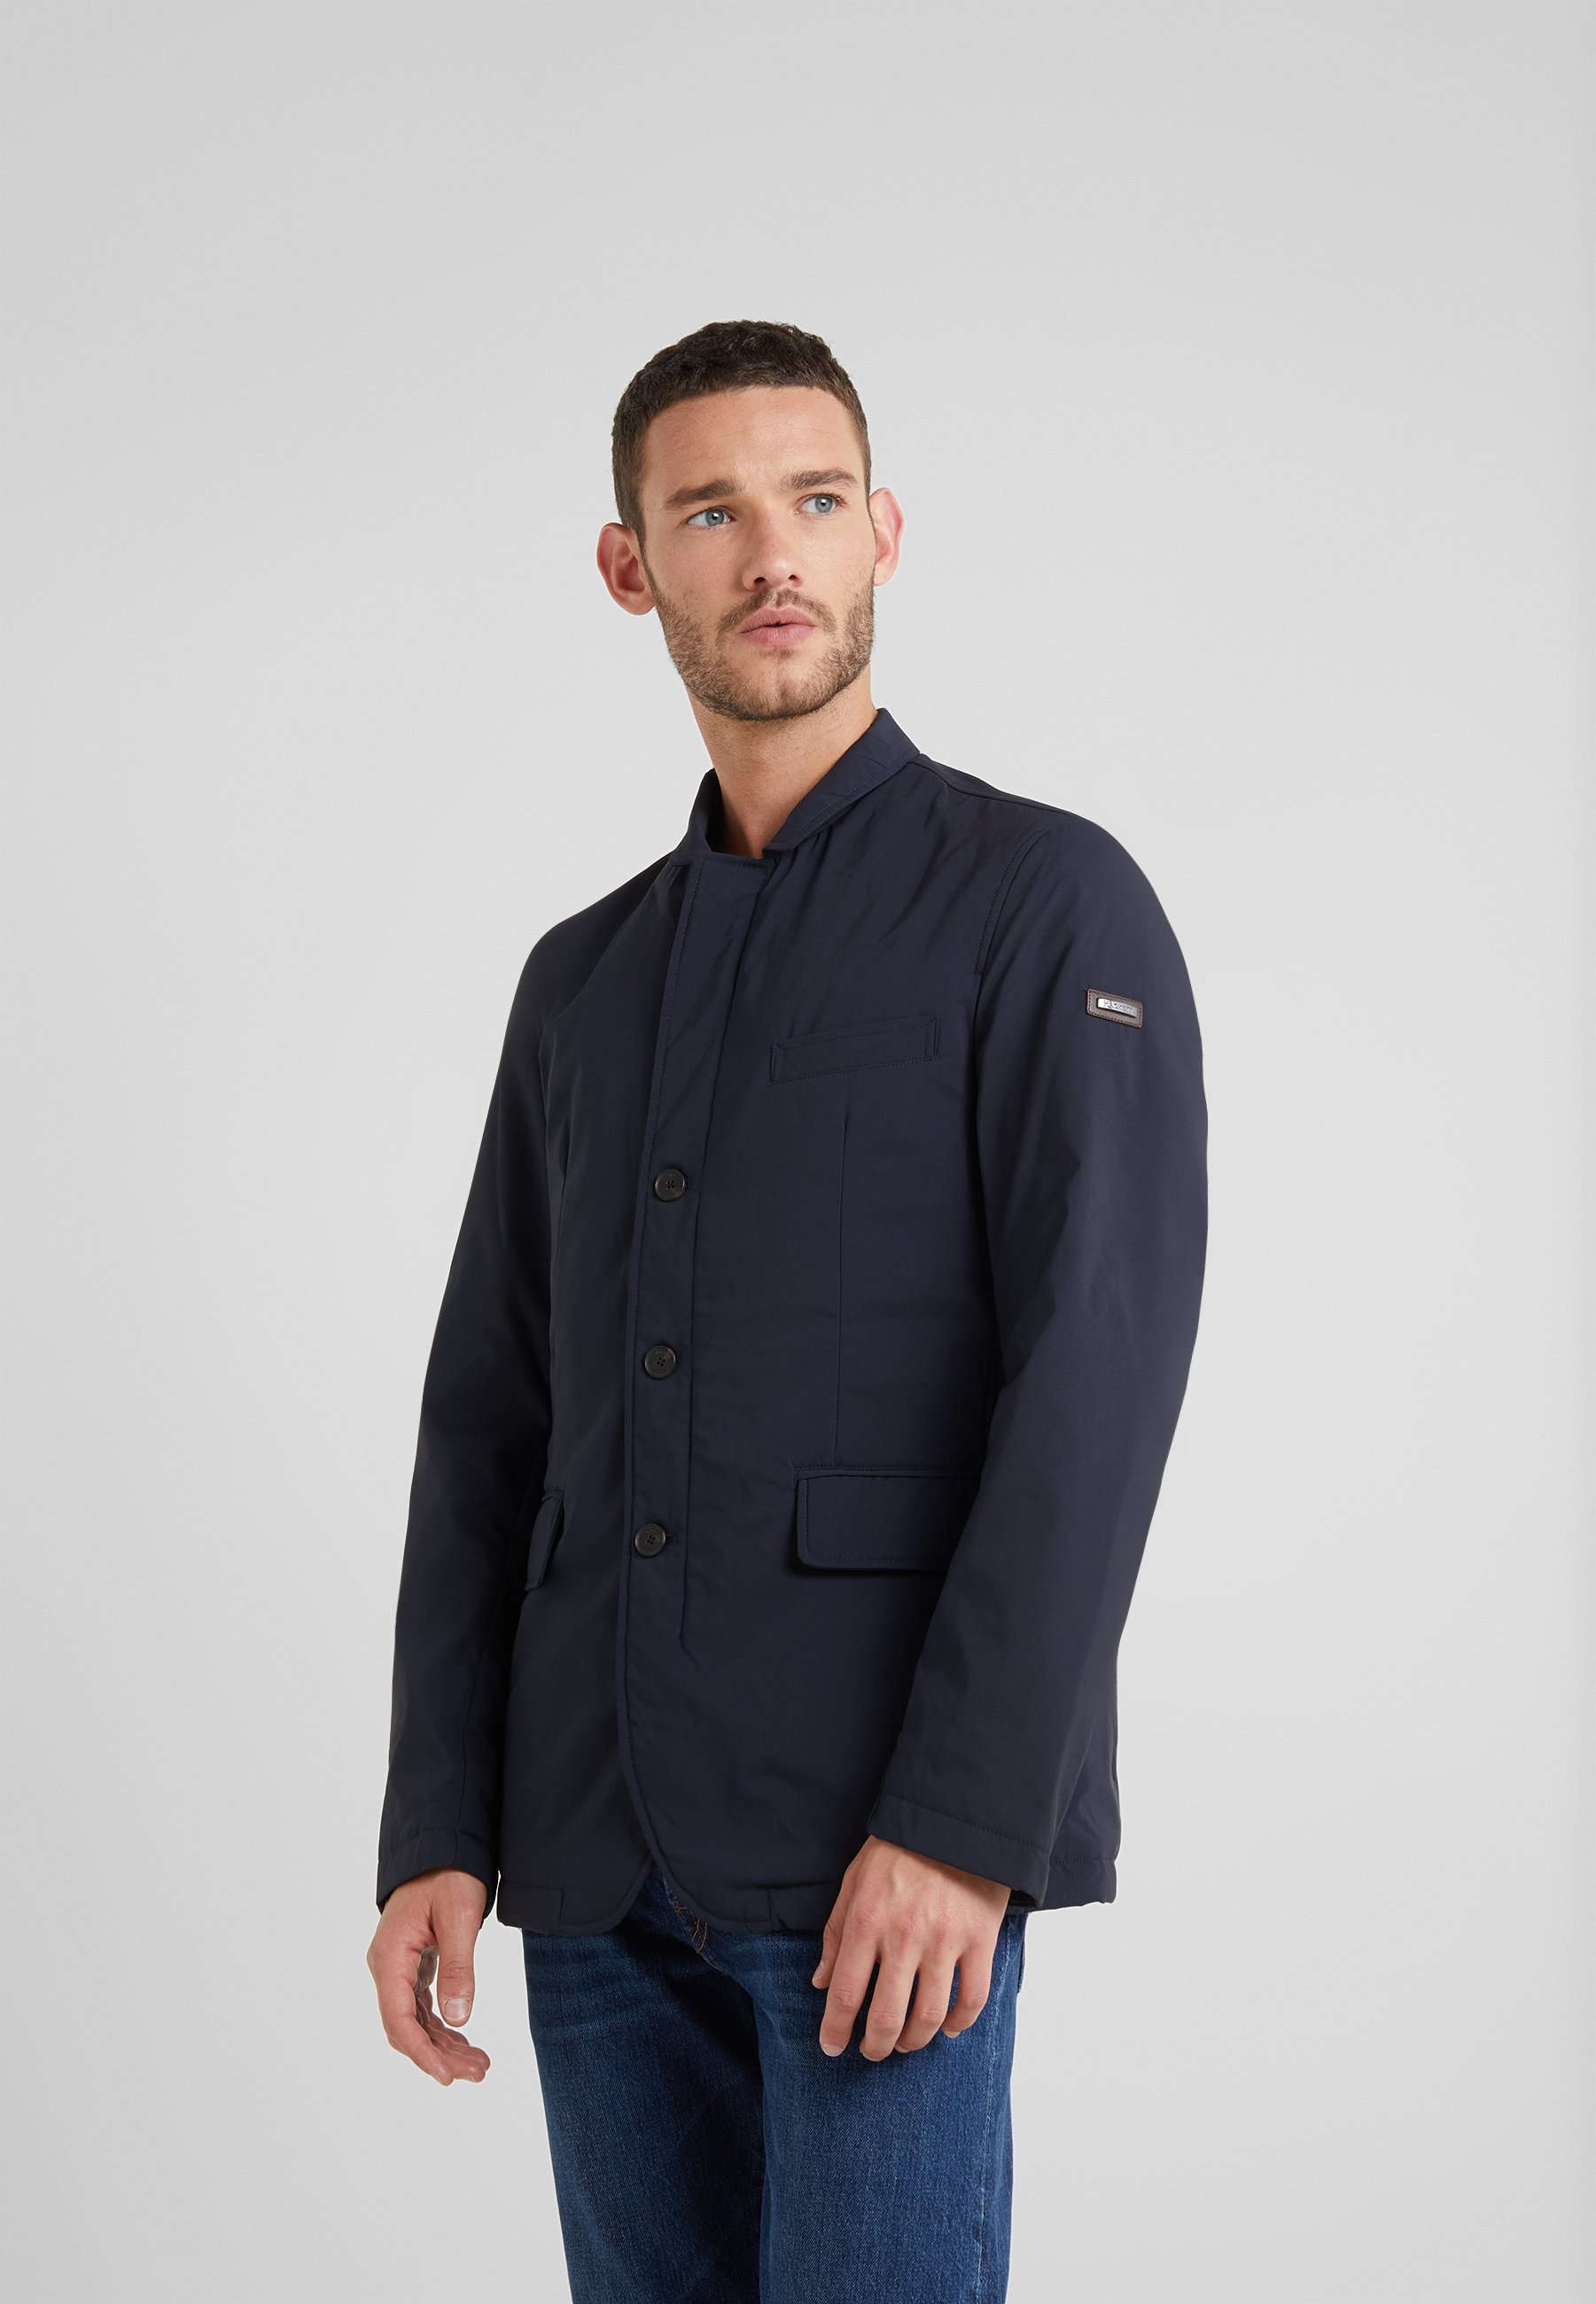 Hackett London Lett jakke navy Zalando.no